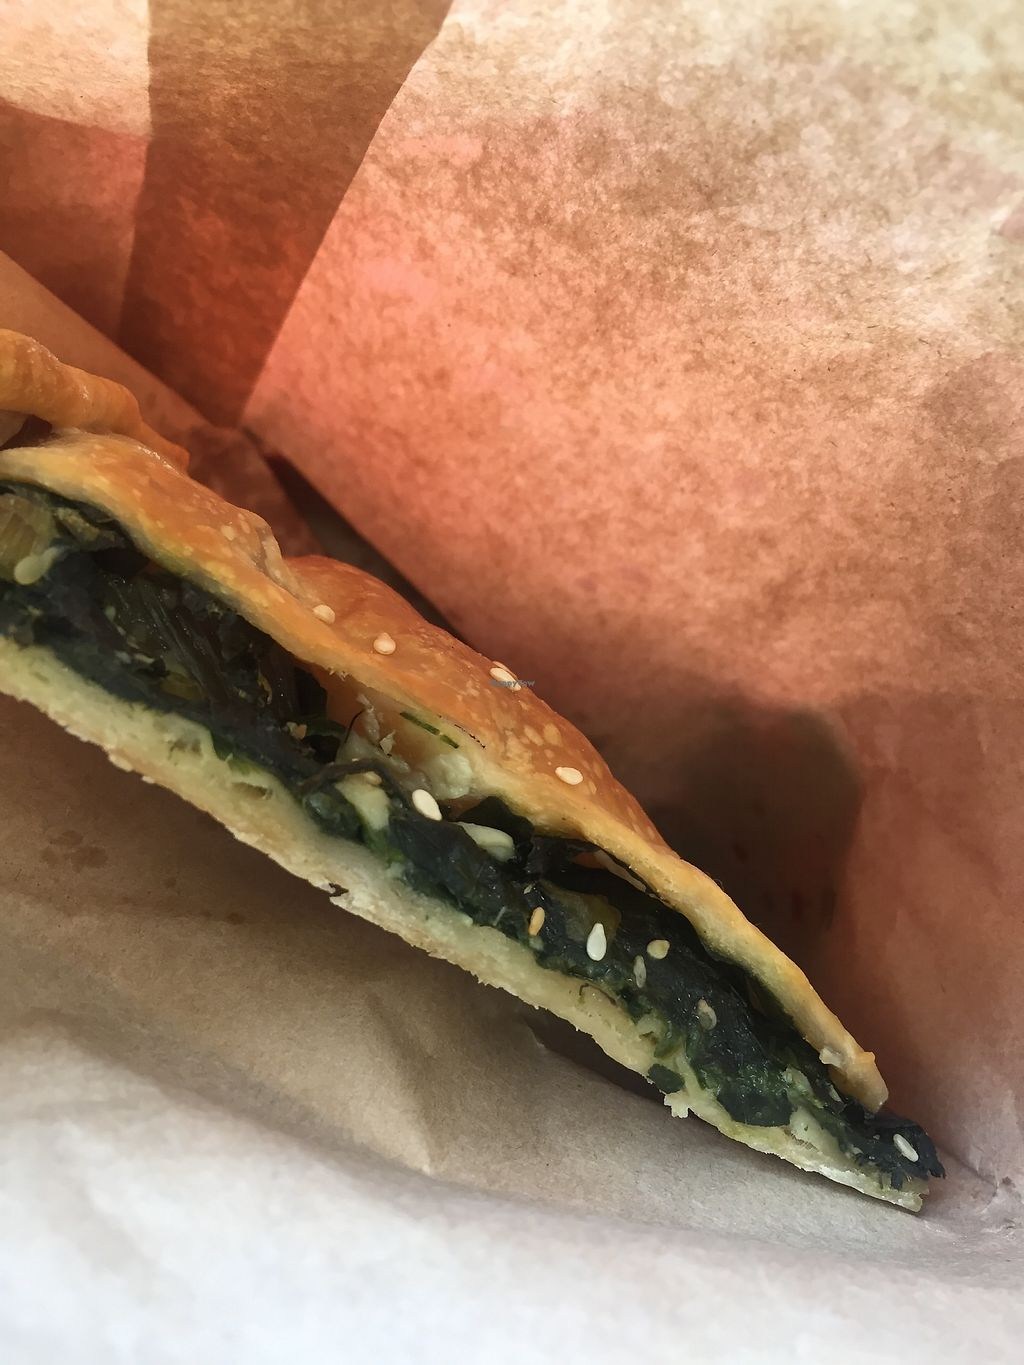 """Photo of Greek Vegan Bakery  by <a href=""""/members/profile/Kittybiscuit"""">Kittybiscuit</a> <br/>Spanakopita  <br/> March 24, 2018  - <a href='/contact/abuse/image/115482/375097'>Report</a>"""